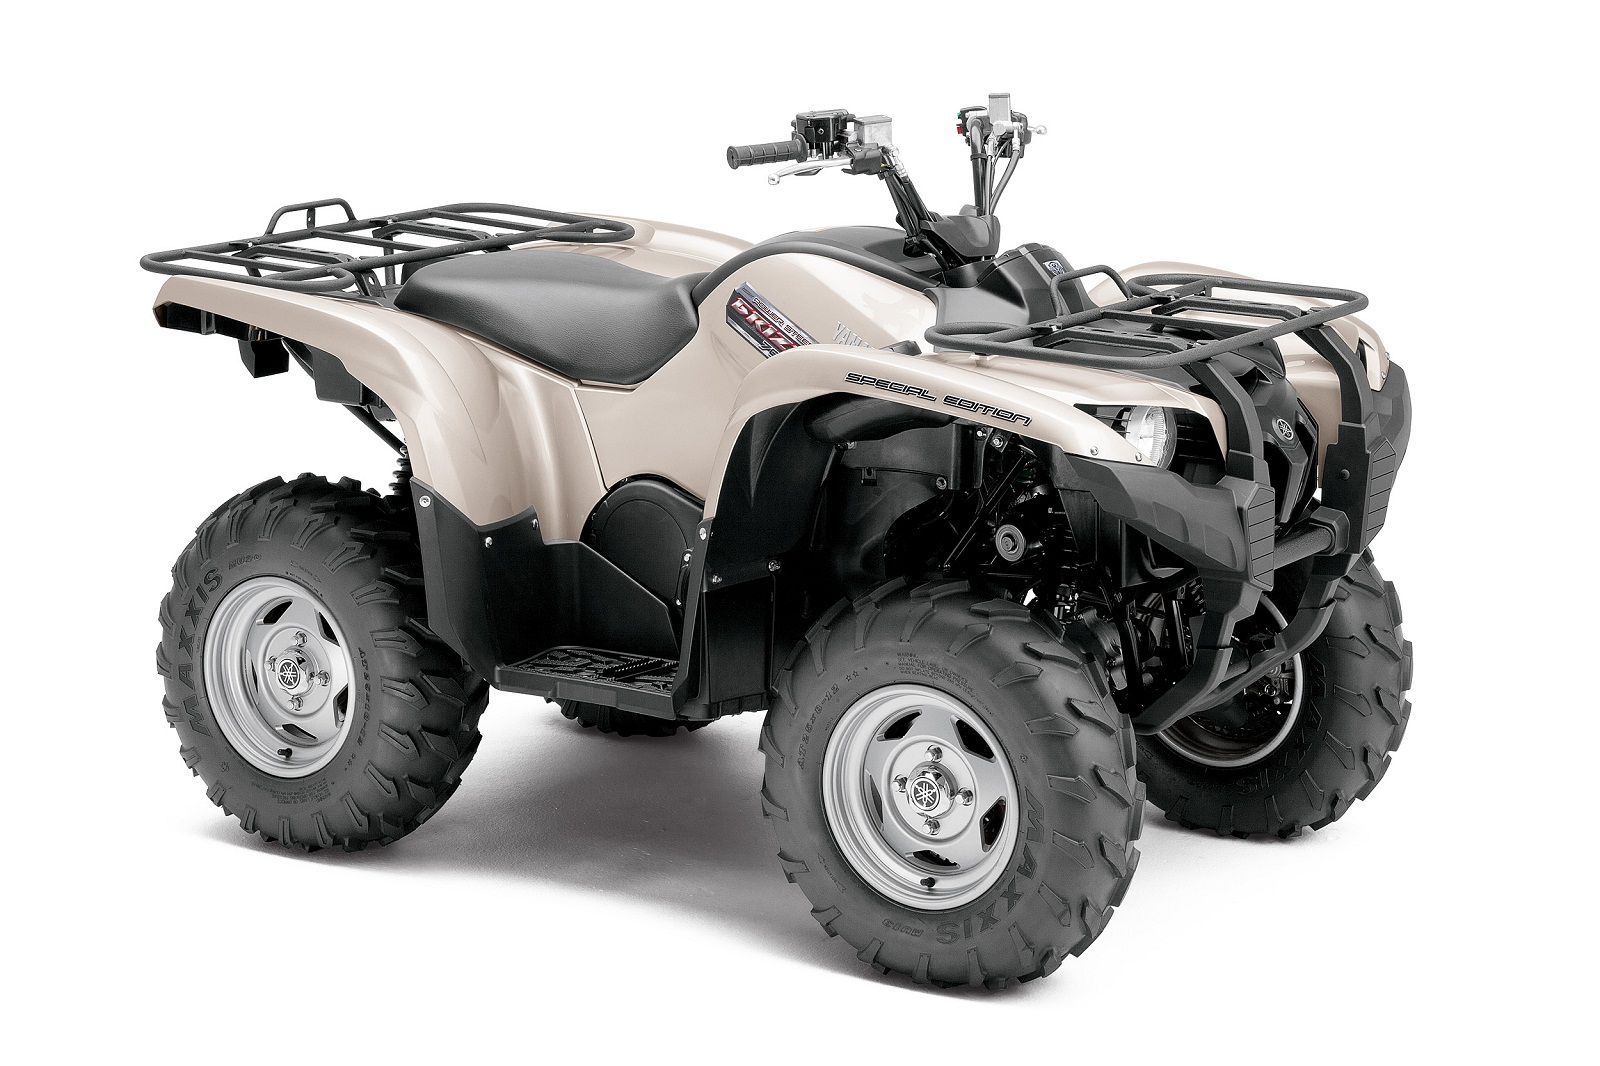 2012 yamaha grizzly 700 fi auto 4x4 eps special edition review top speed. Black Bedroom Furniture Sets. Home Design Ideas